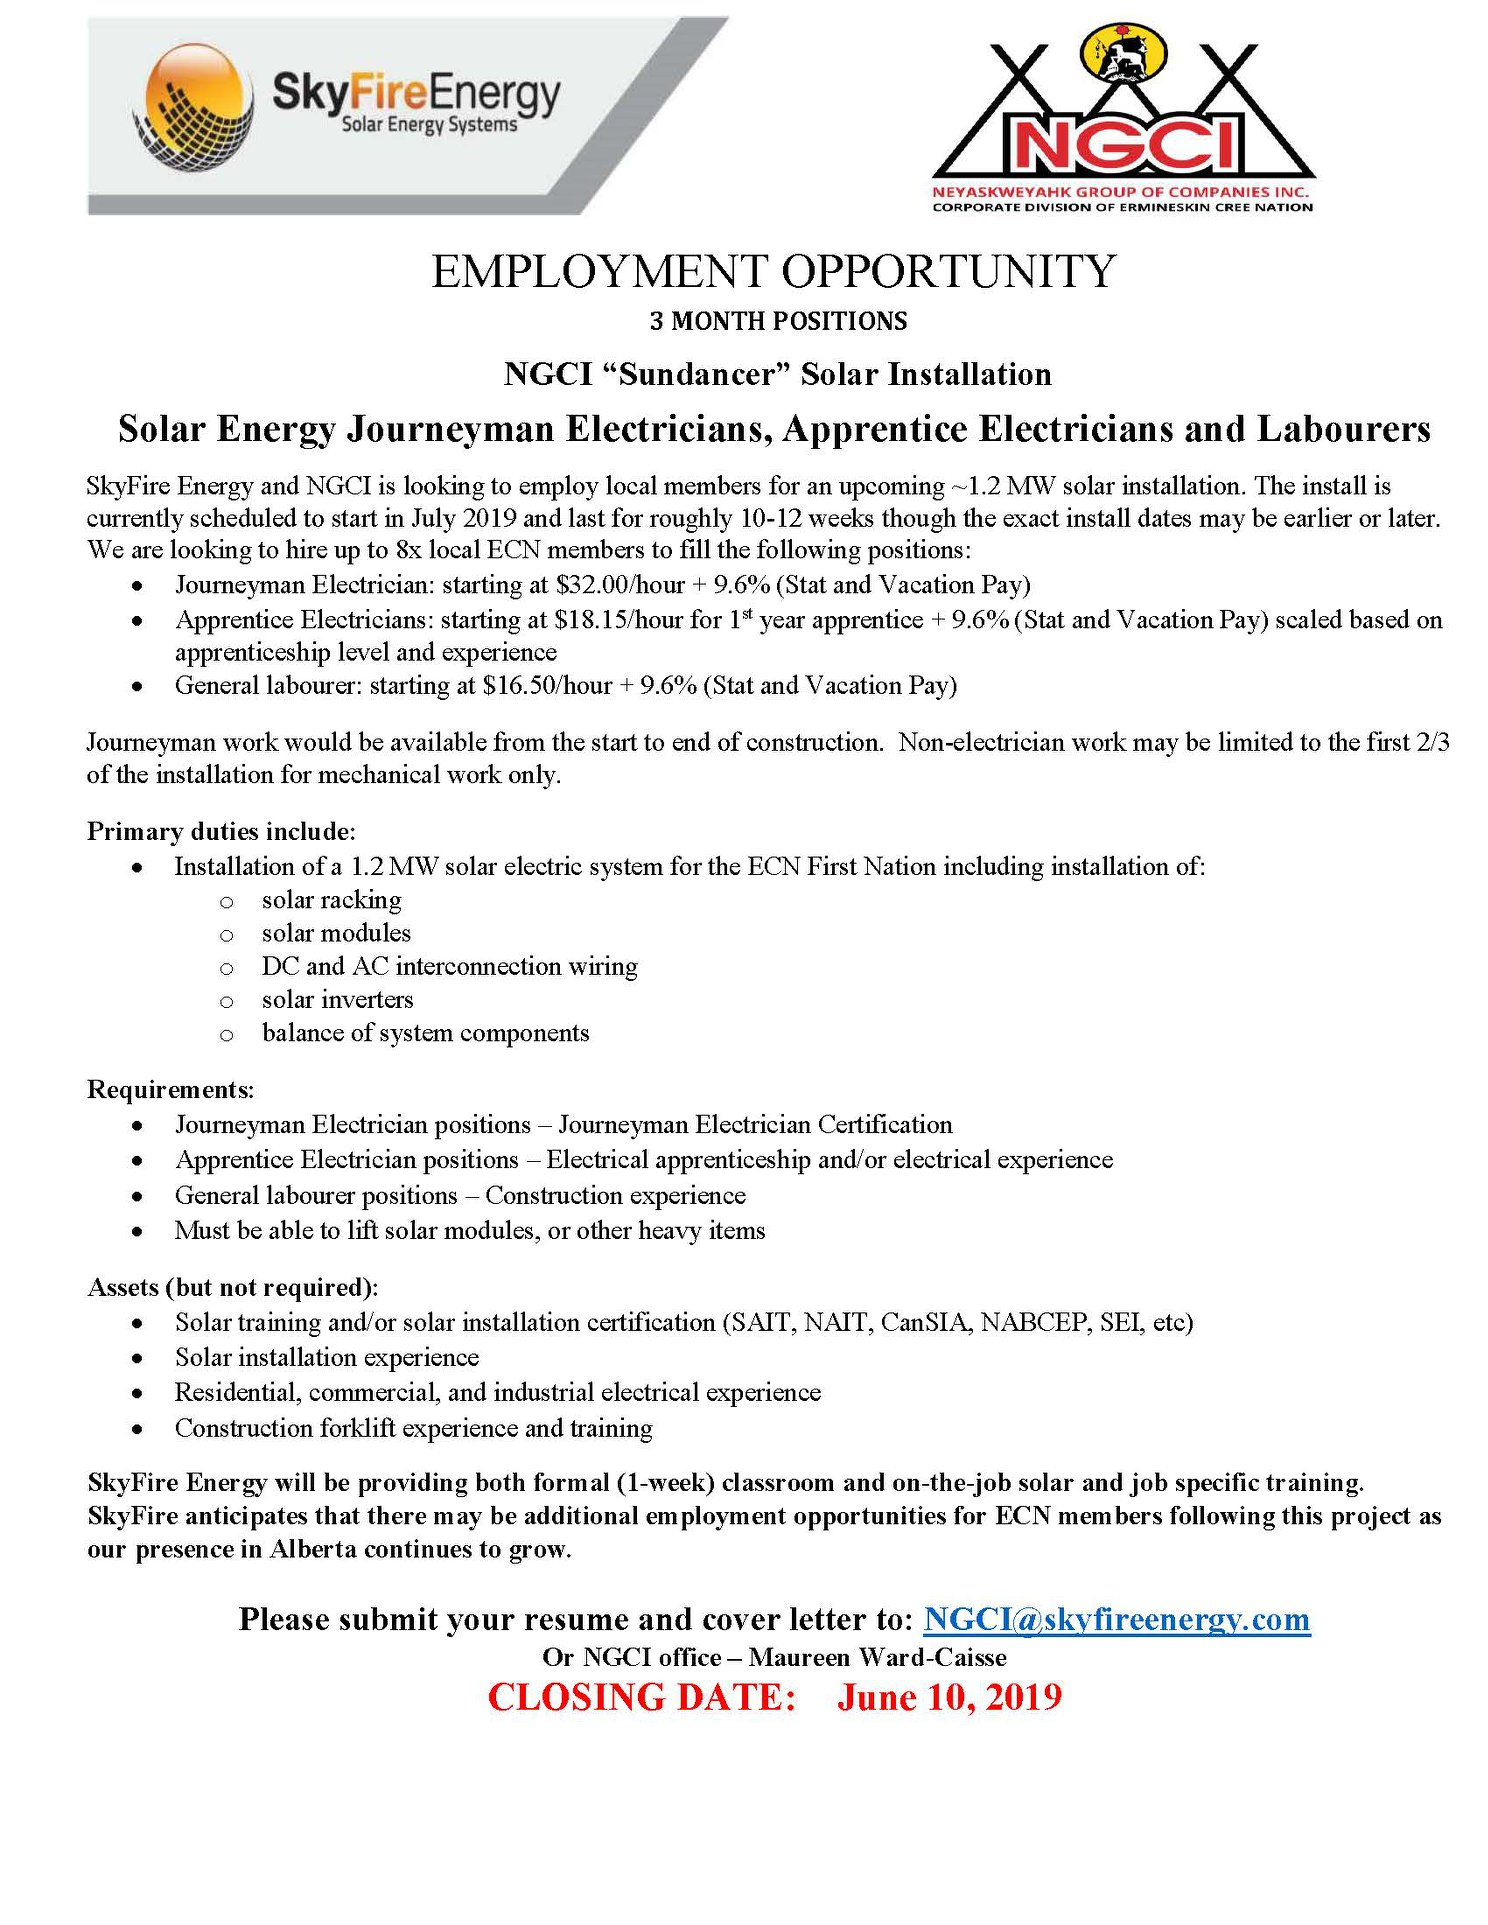 Employment OpportunitySeeking motivated individuals with an interest